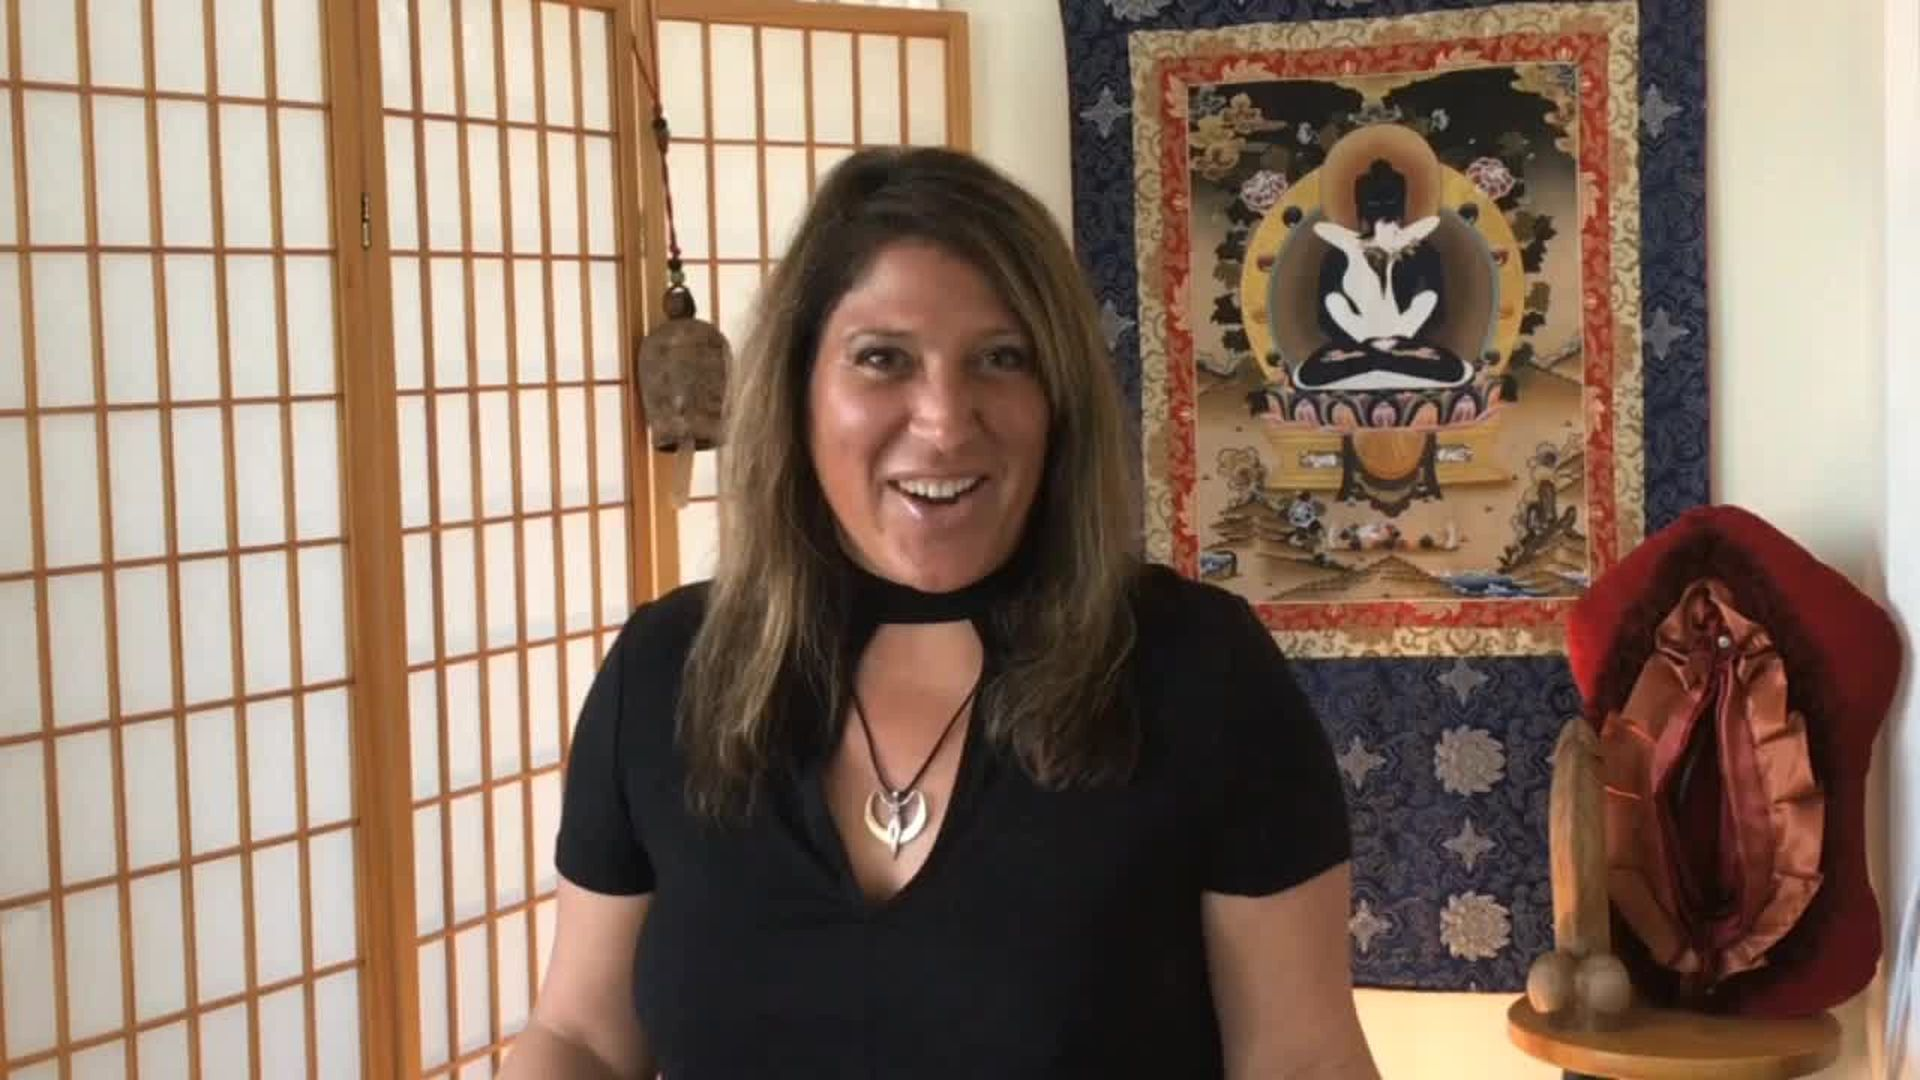 How To Increase Your Intimacy With Sacred Temple Arts